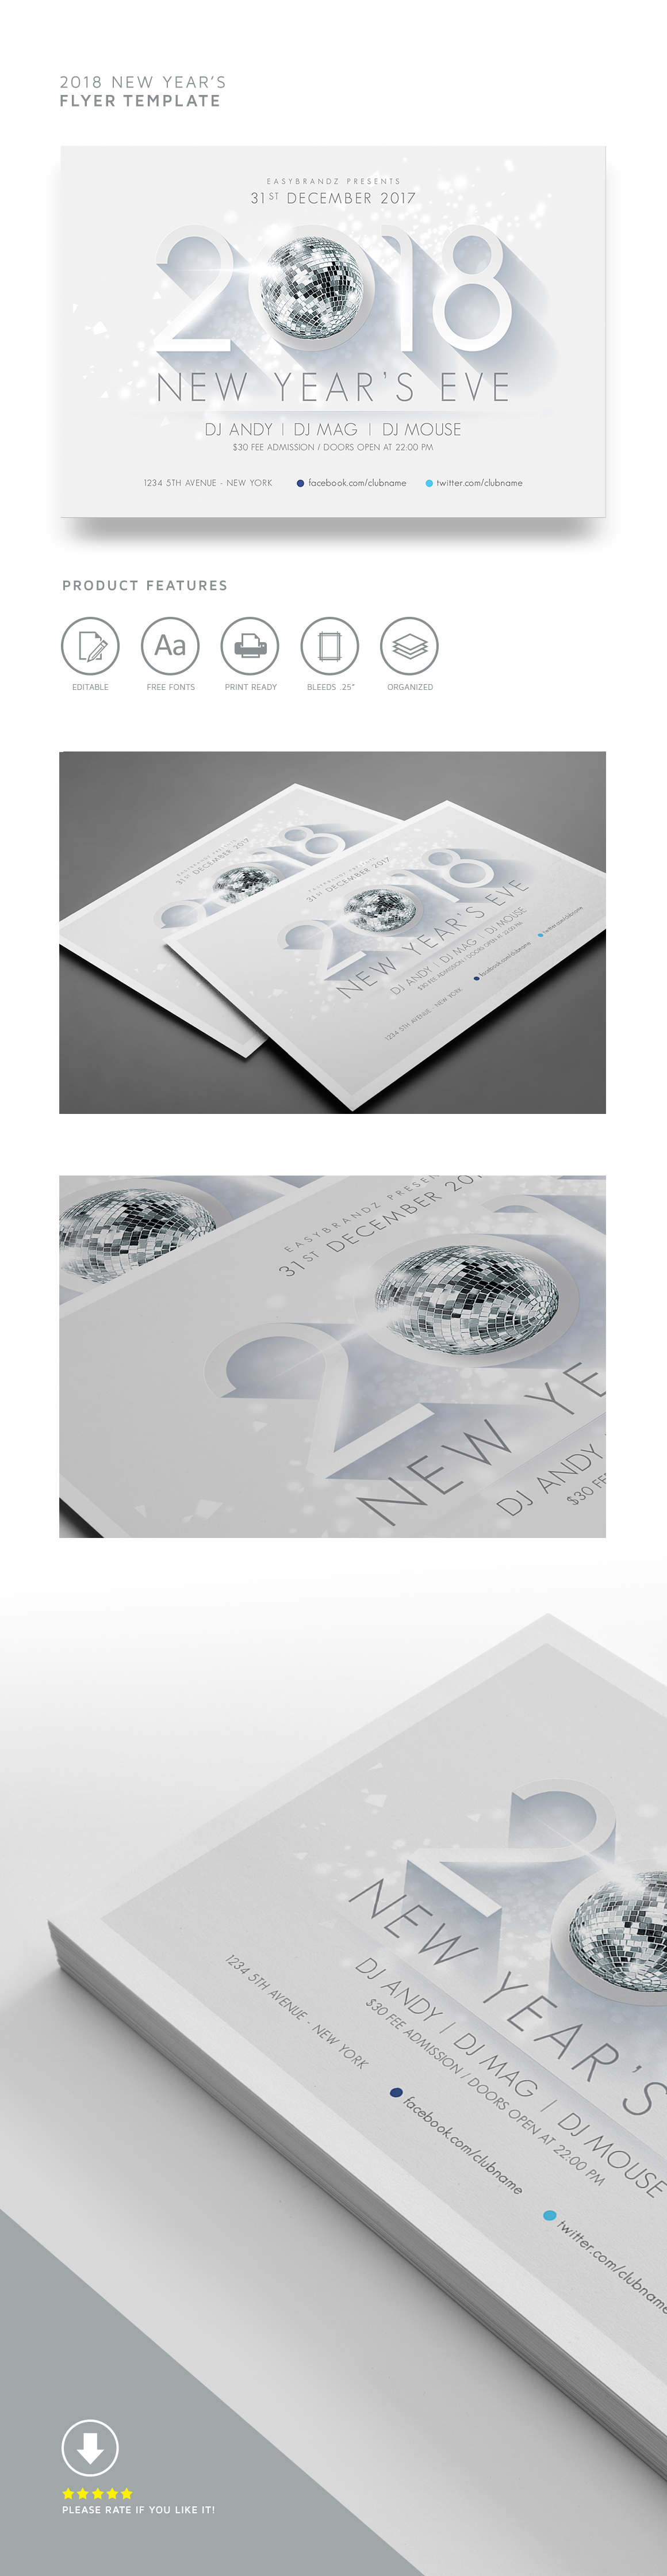 2018 new years flyer template on behance